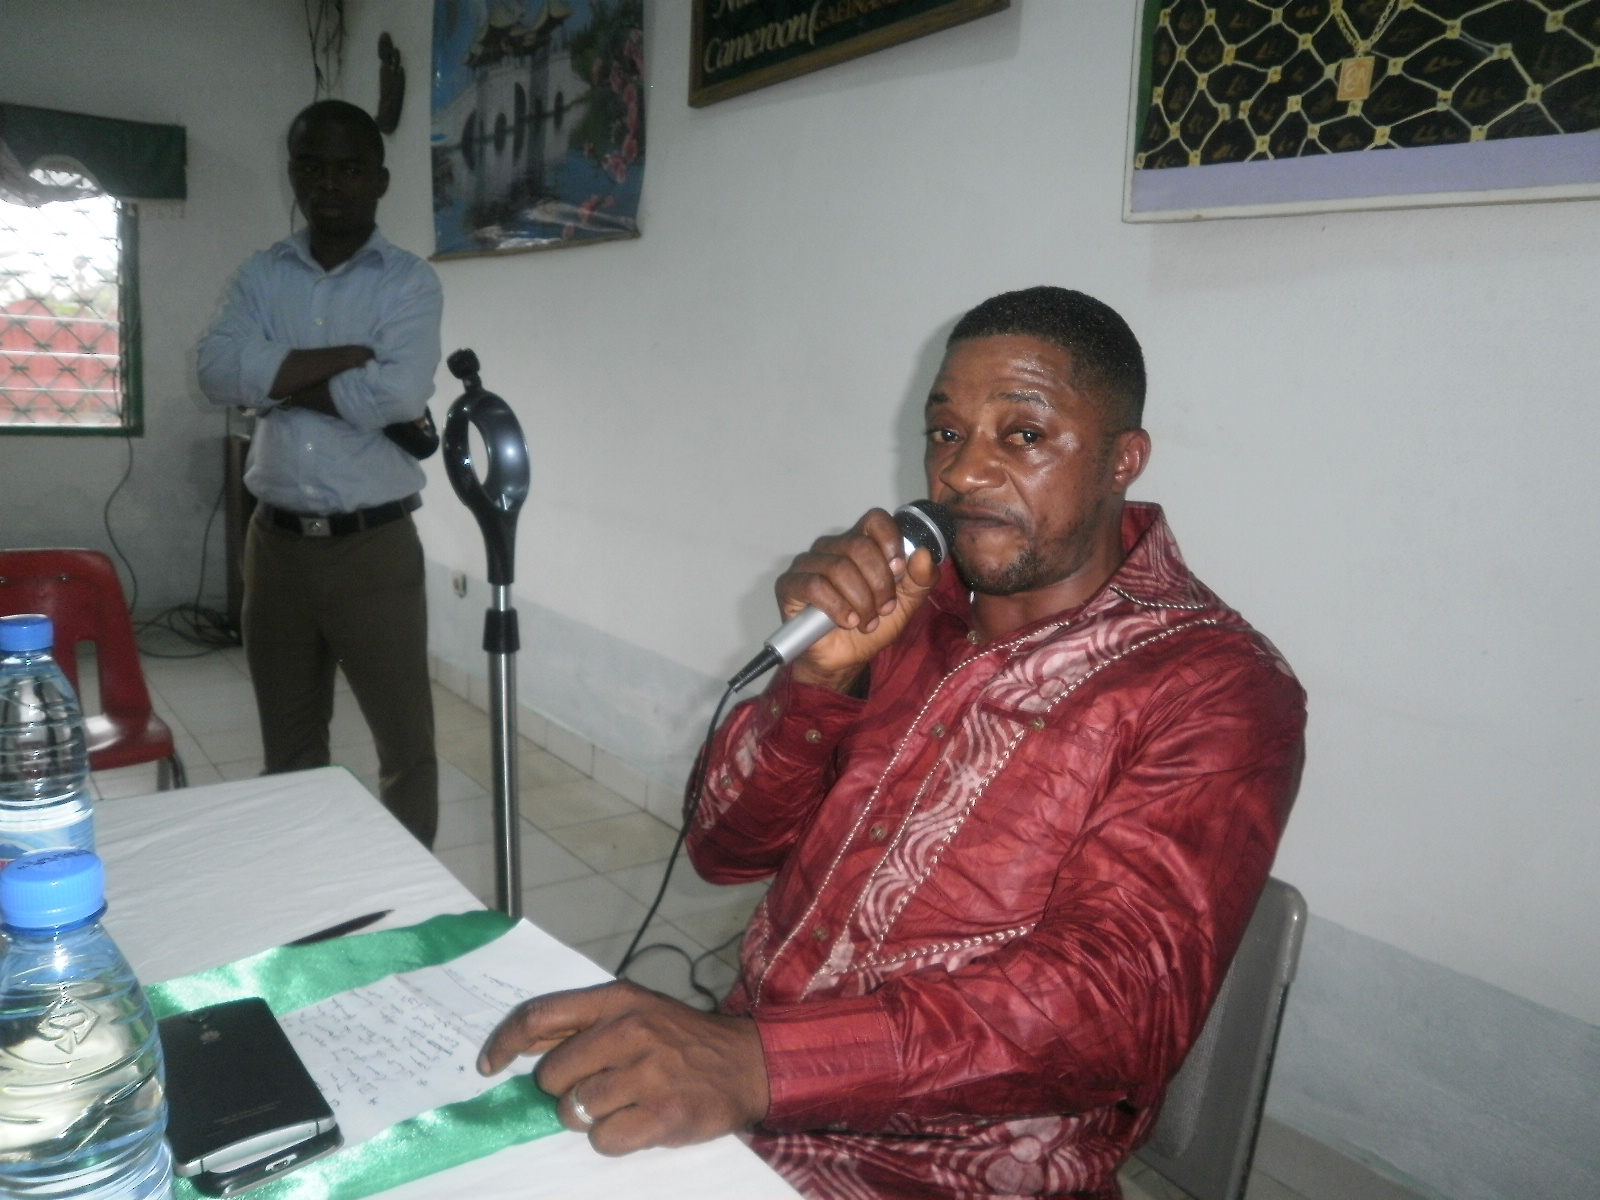 A look of Dr Fru at a press conference in the build up to African Traditional Medicine Day, August 31